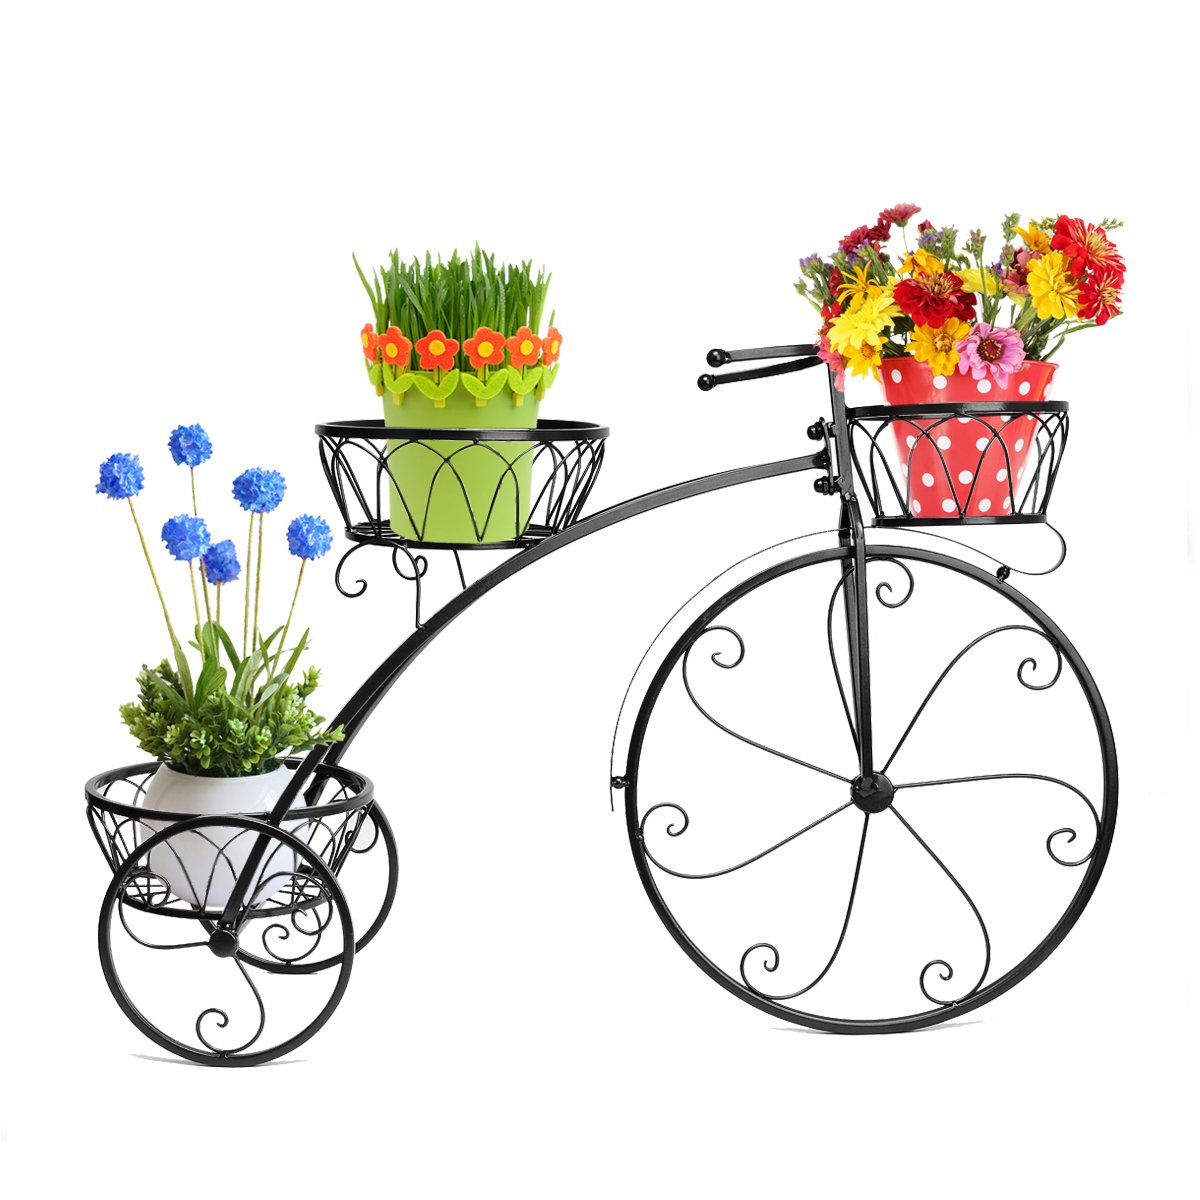 Dazone® Exquisite Balcony Bike Plant Pot Tray Tron Stable Multi-layer Flower Pot Holder Bicycle Flower Frame Stand Pergolas (Black) by DAZONE